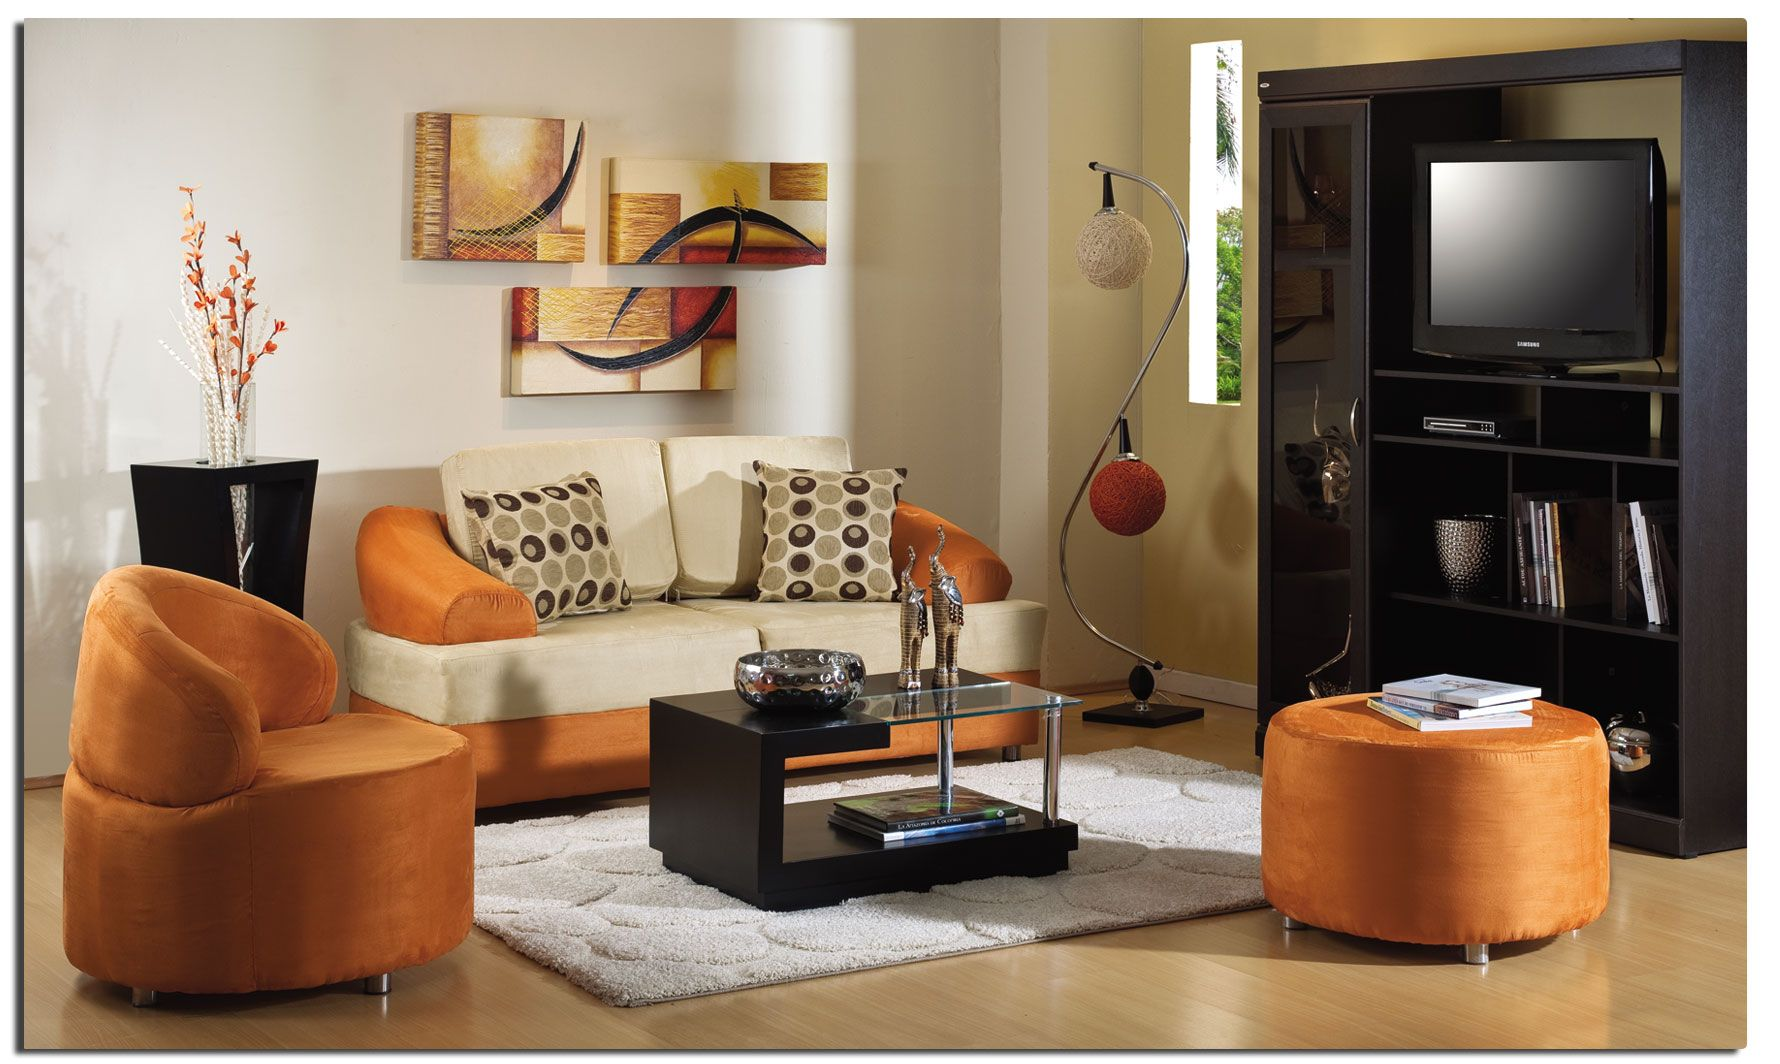 Cuadros Decorativos Color Beige Buscar Con Google Decoracion  # Muebles Lagunilla